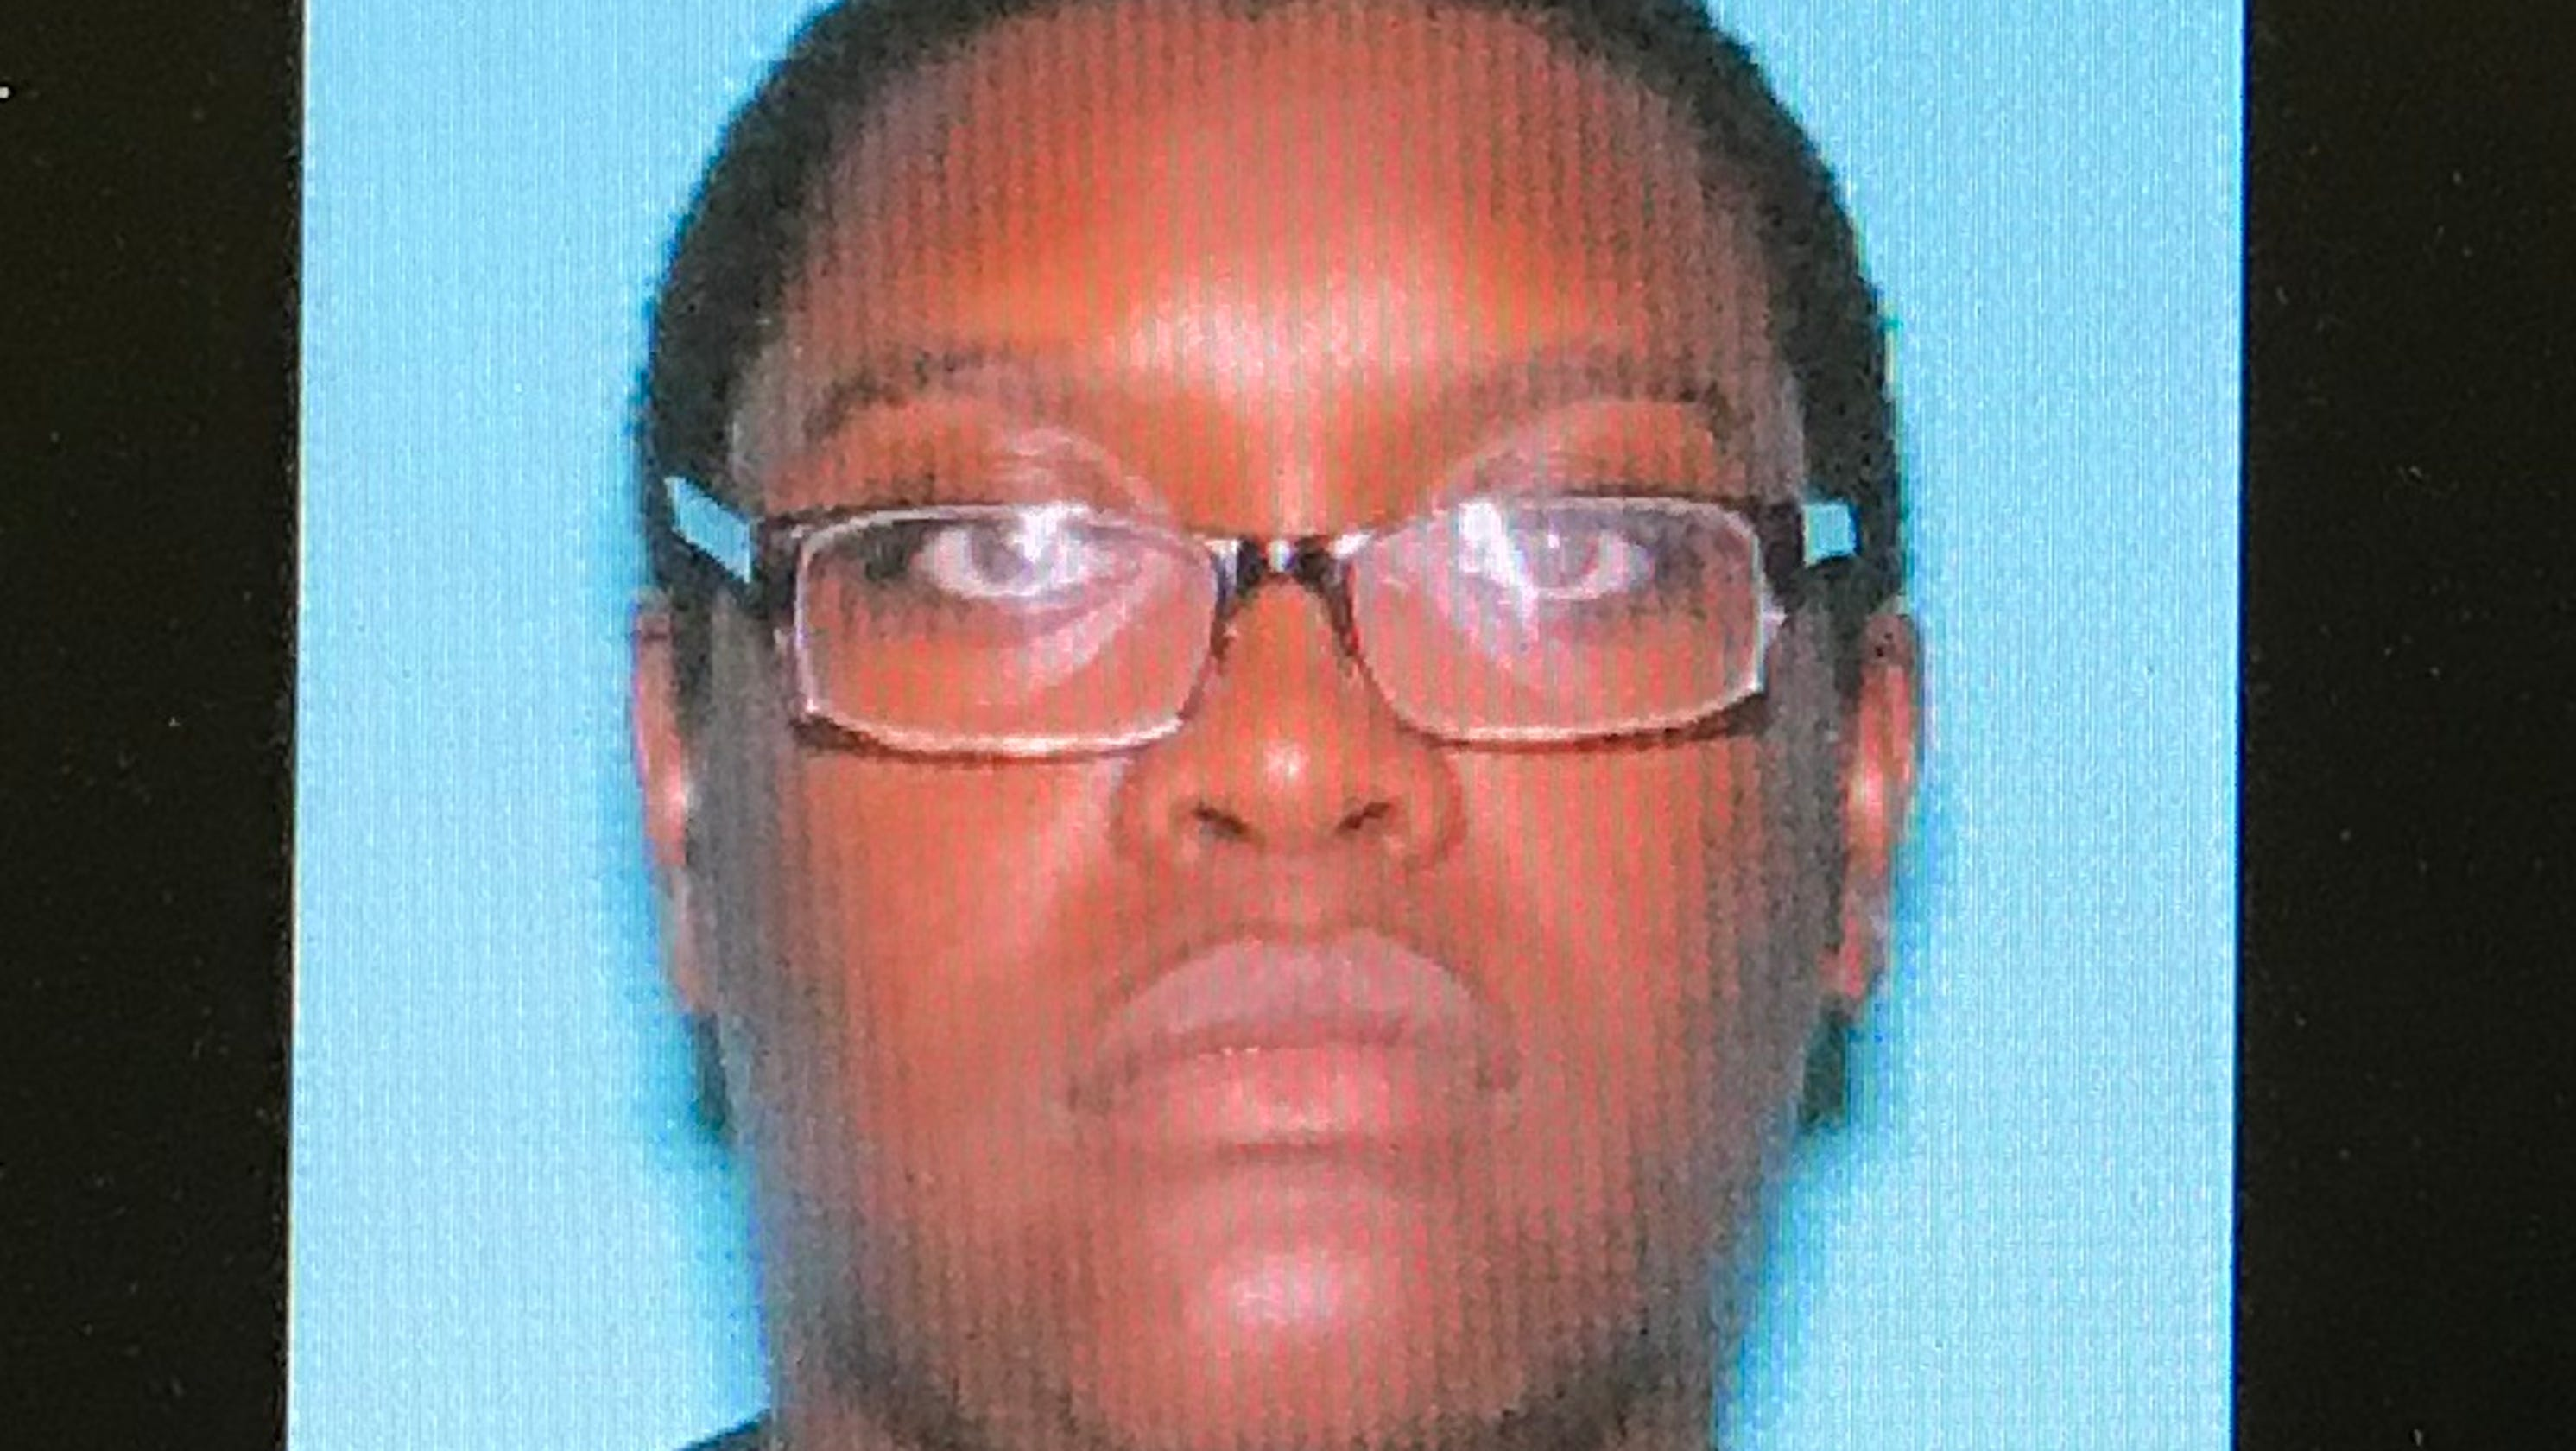 Fugitive arrested in Neptune accused of killing girlfriend's father